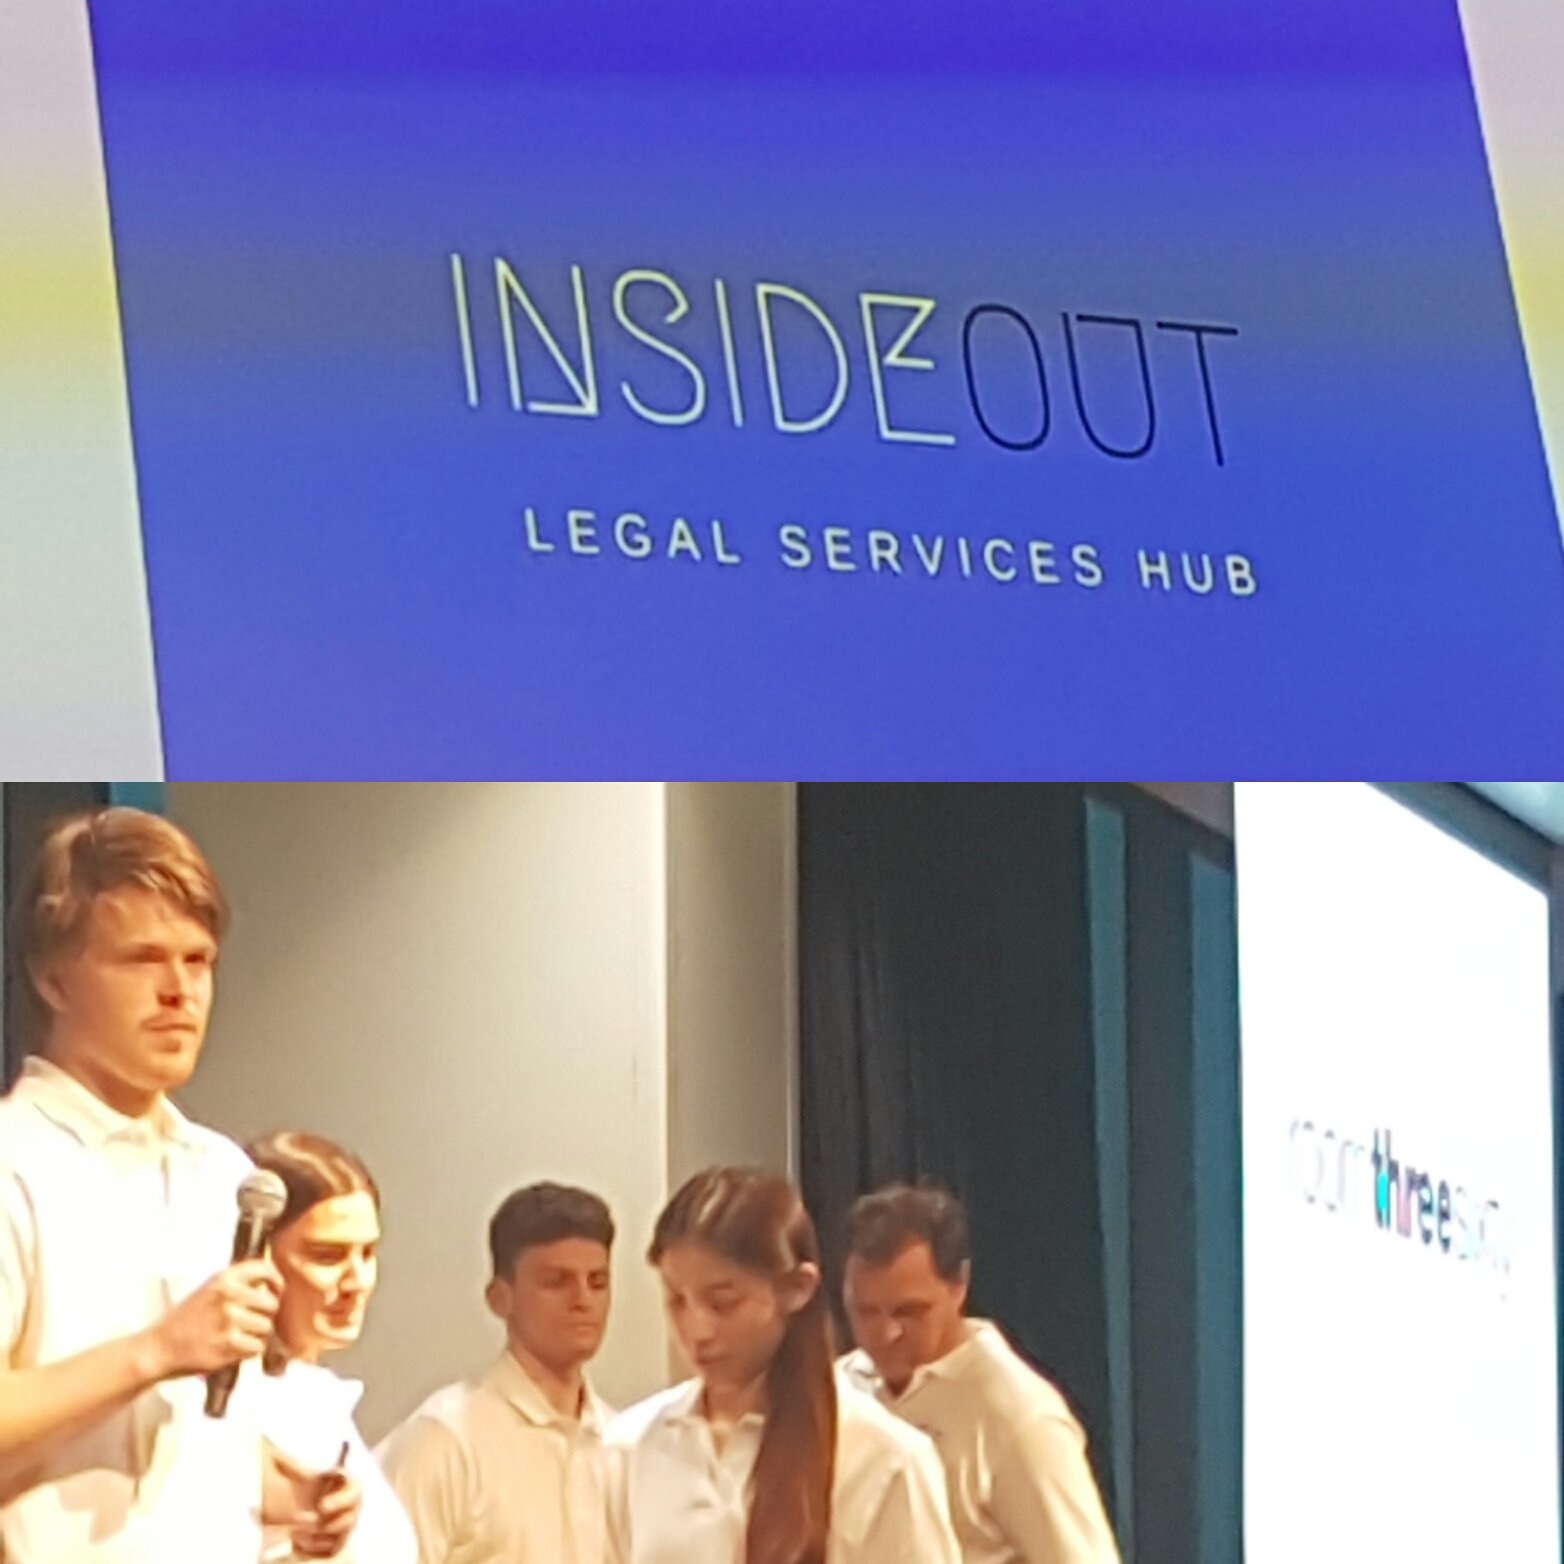 Team @HSFlegal #pitching #InsideOut legal services @Legal_Forecast #disruptinglaw #hackathon  #disruptive #pitchtime #innovation #jdhorizons https://t.co/F1nK8hseSf